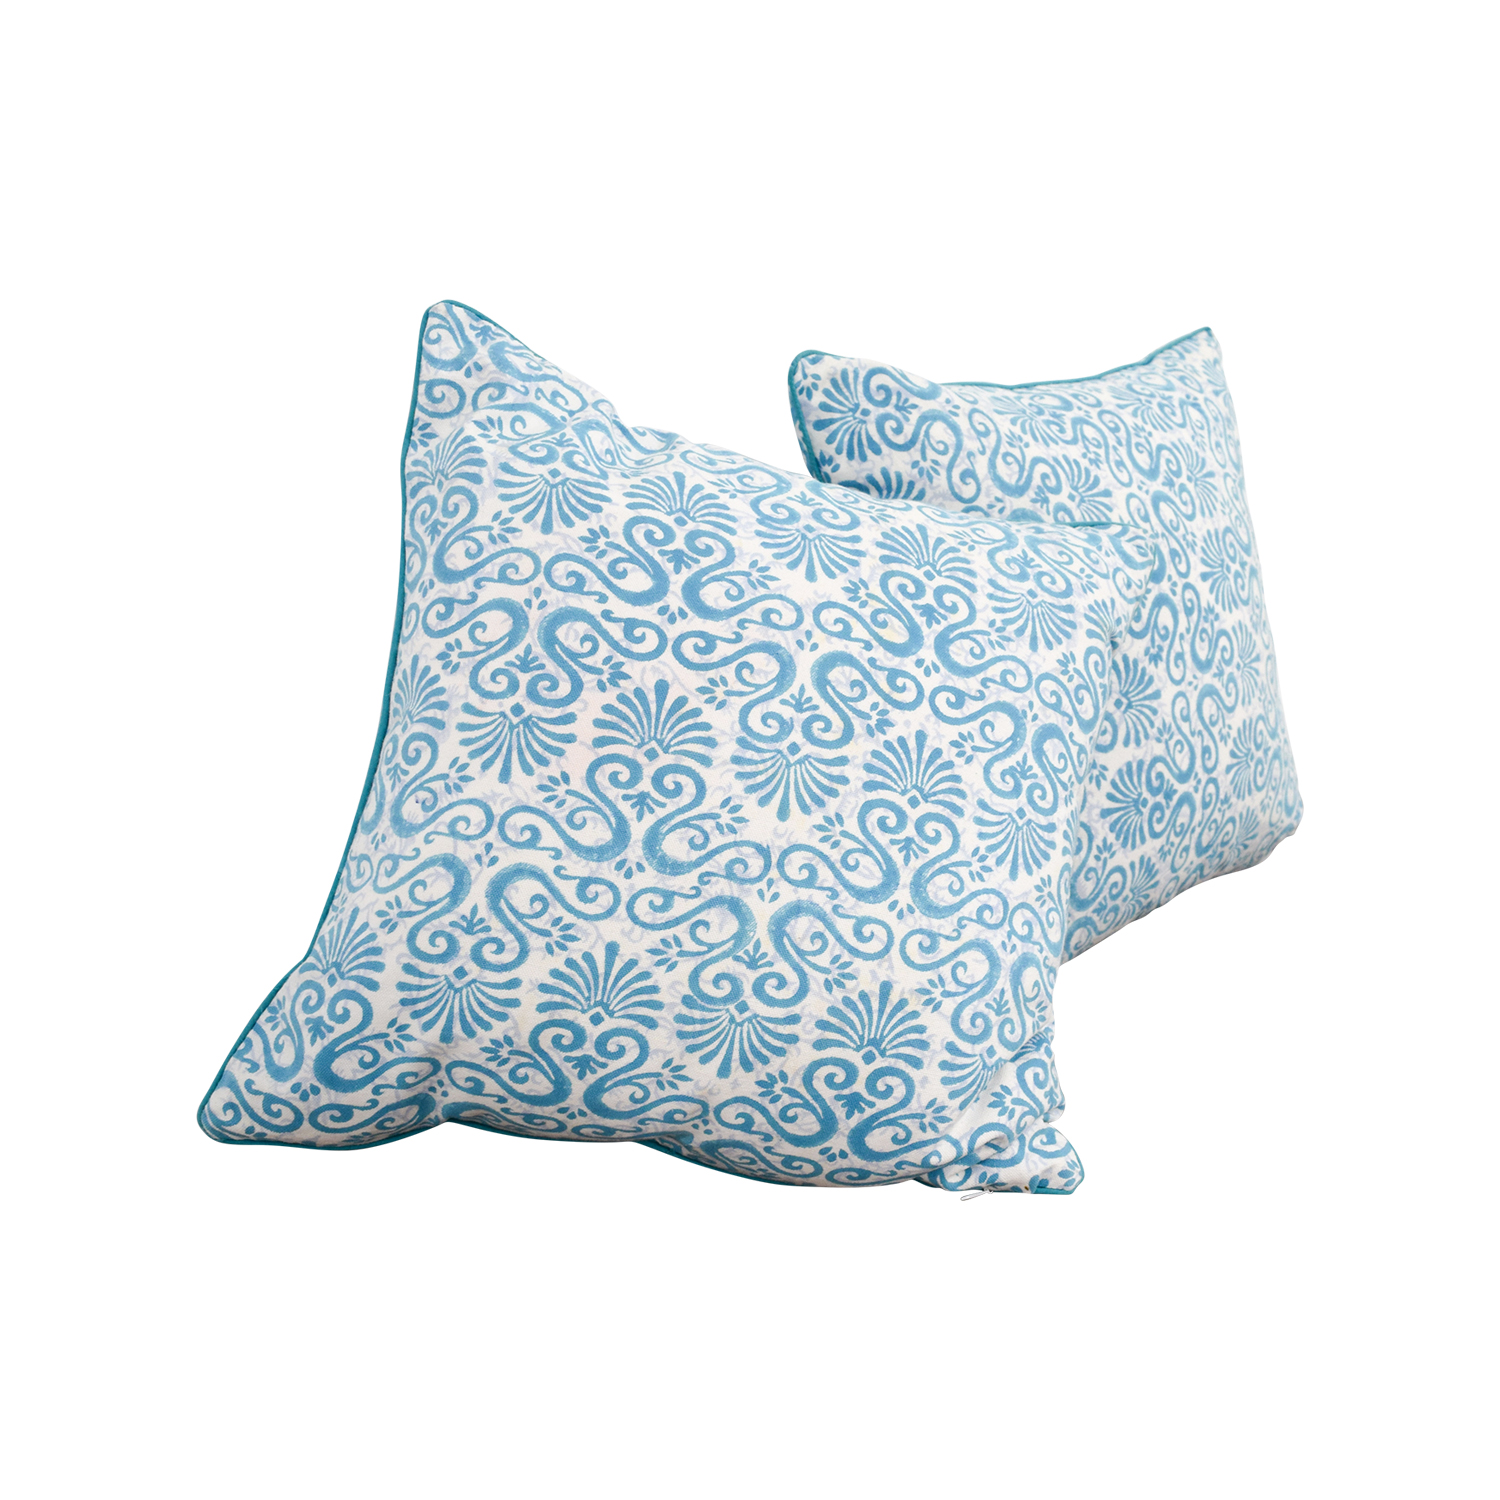 buy Roller Rabbit Blue and White Scroll Pillows Roller Rabbit